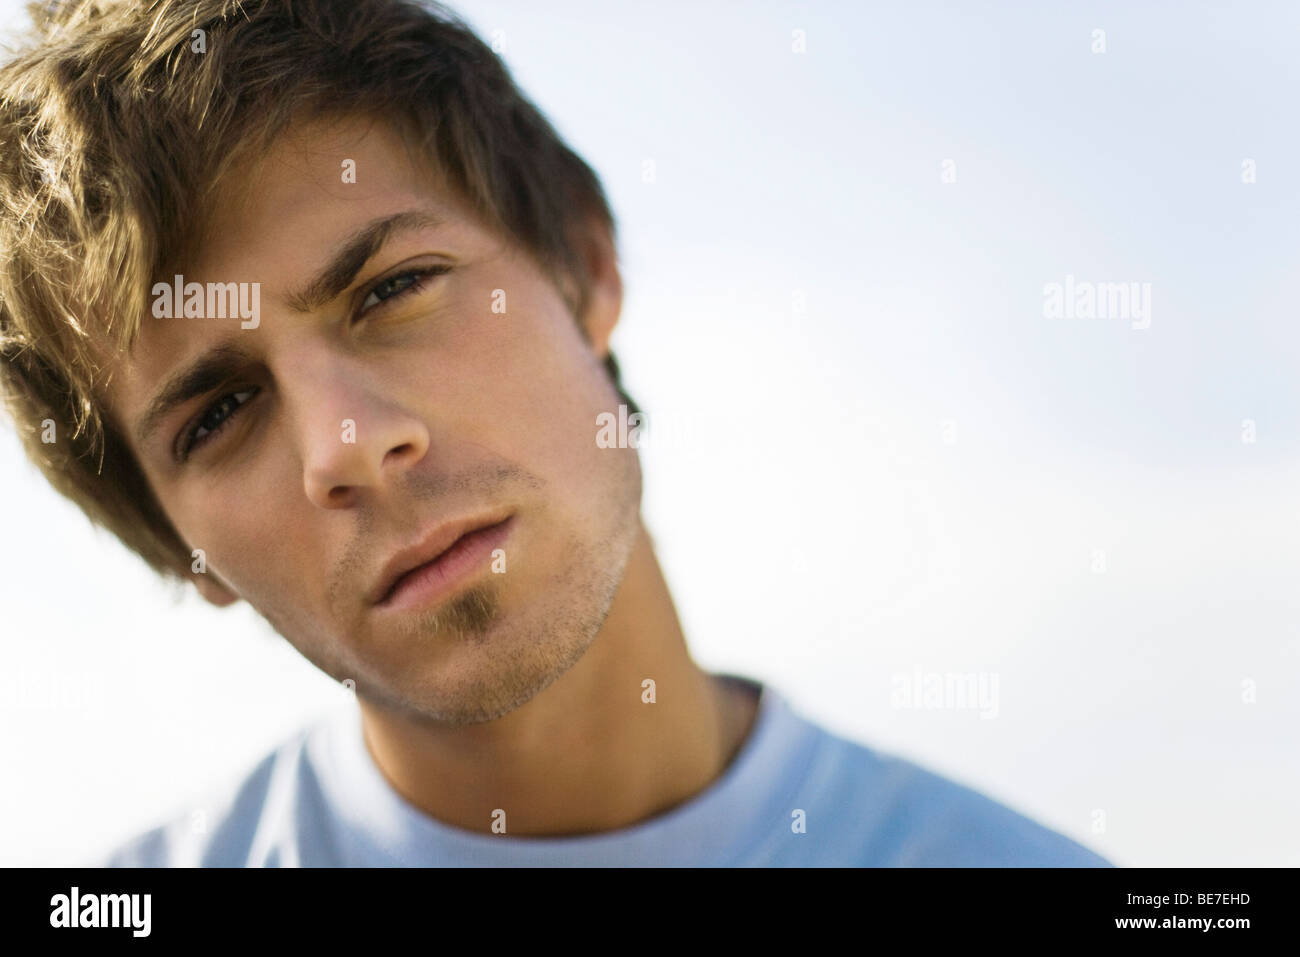 Young man looking at camera with head tilted and brow furrowed - Stock Image